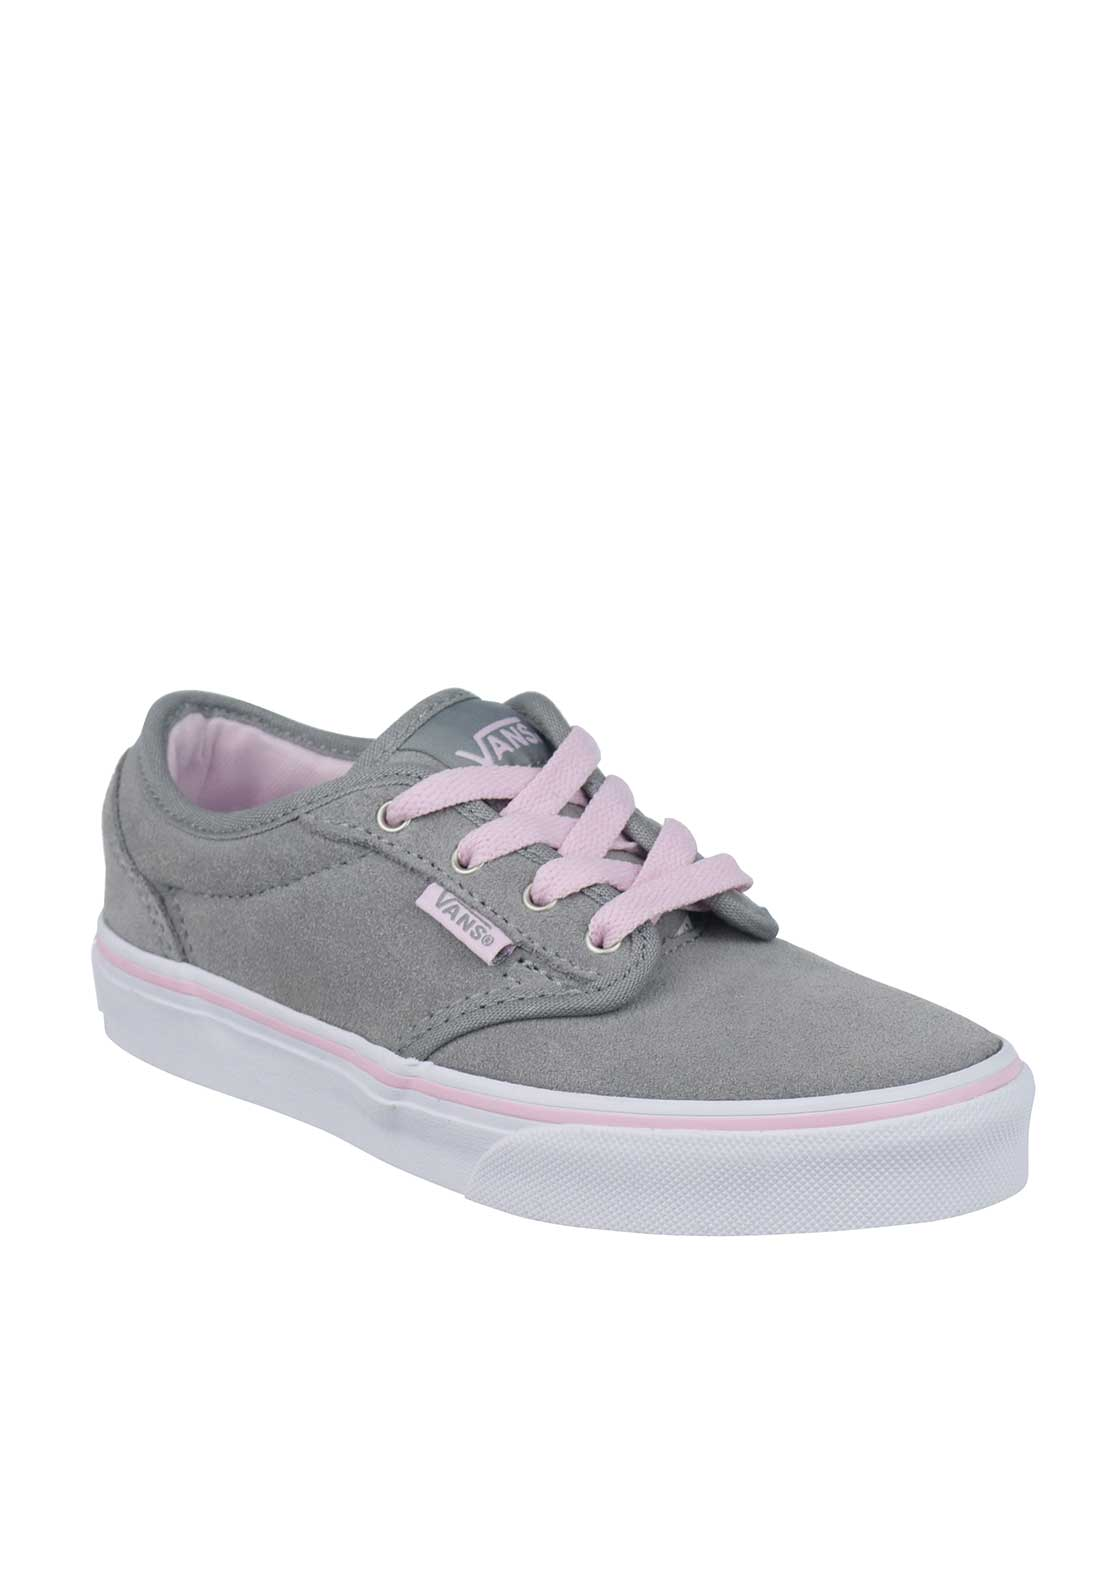 Vans Girls Suede Trainers, Grey